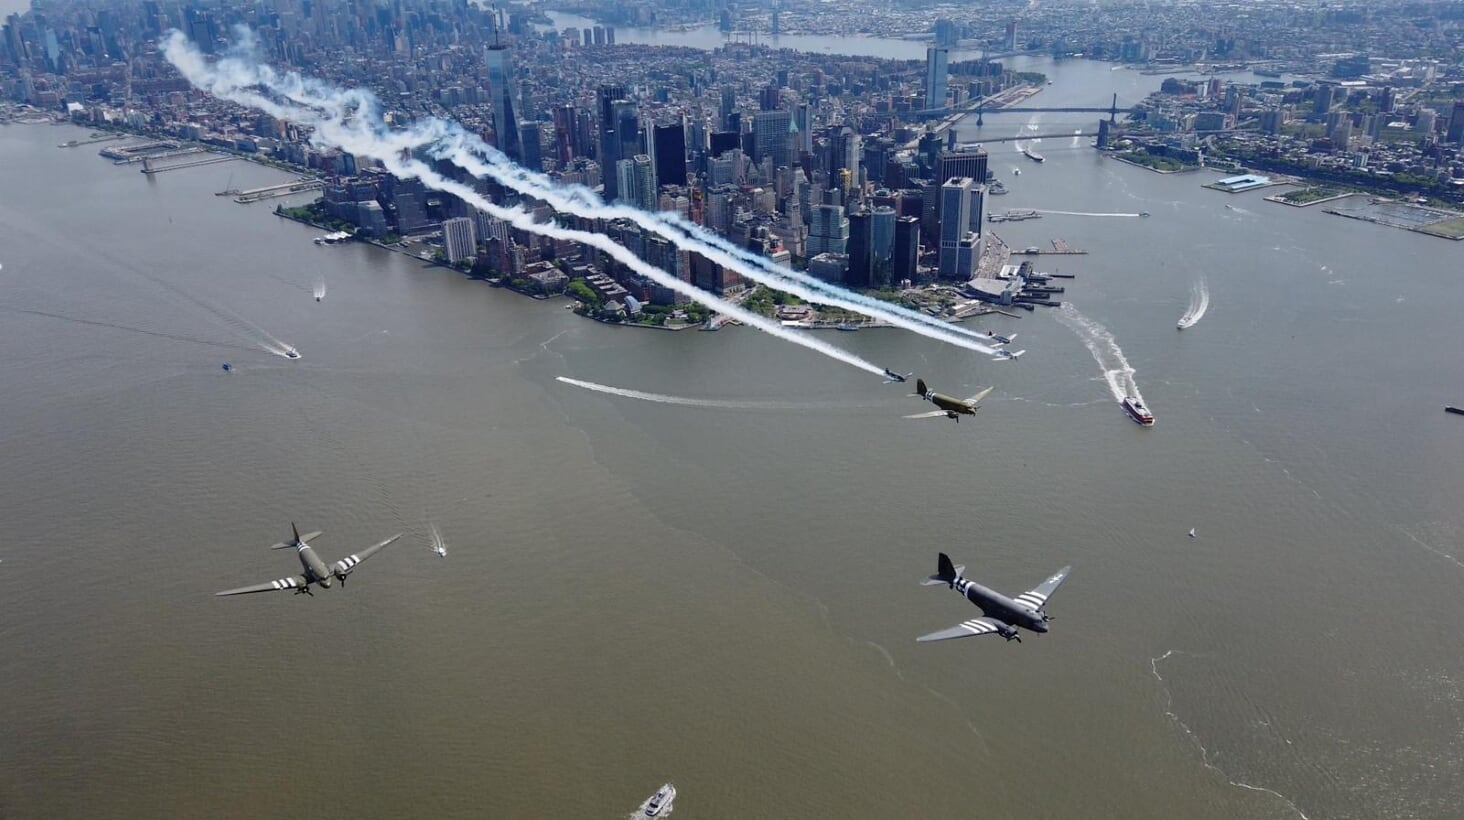 SOF Photo - DDS NYC Flyover